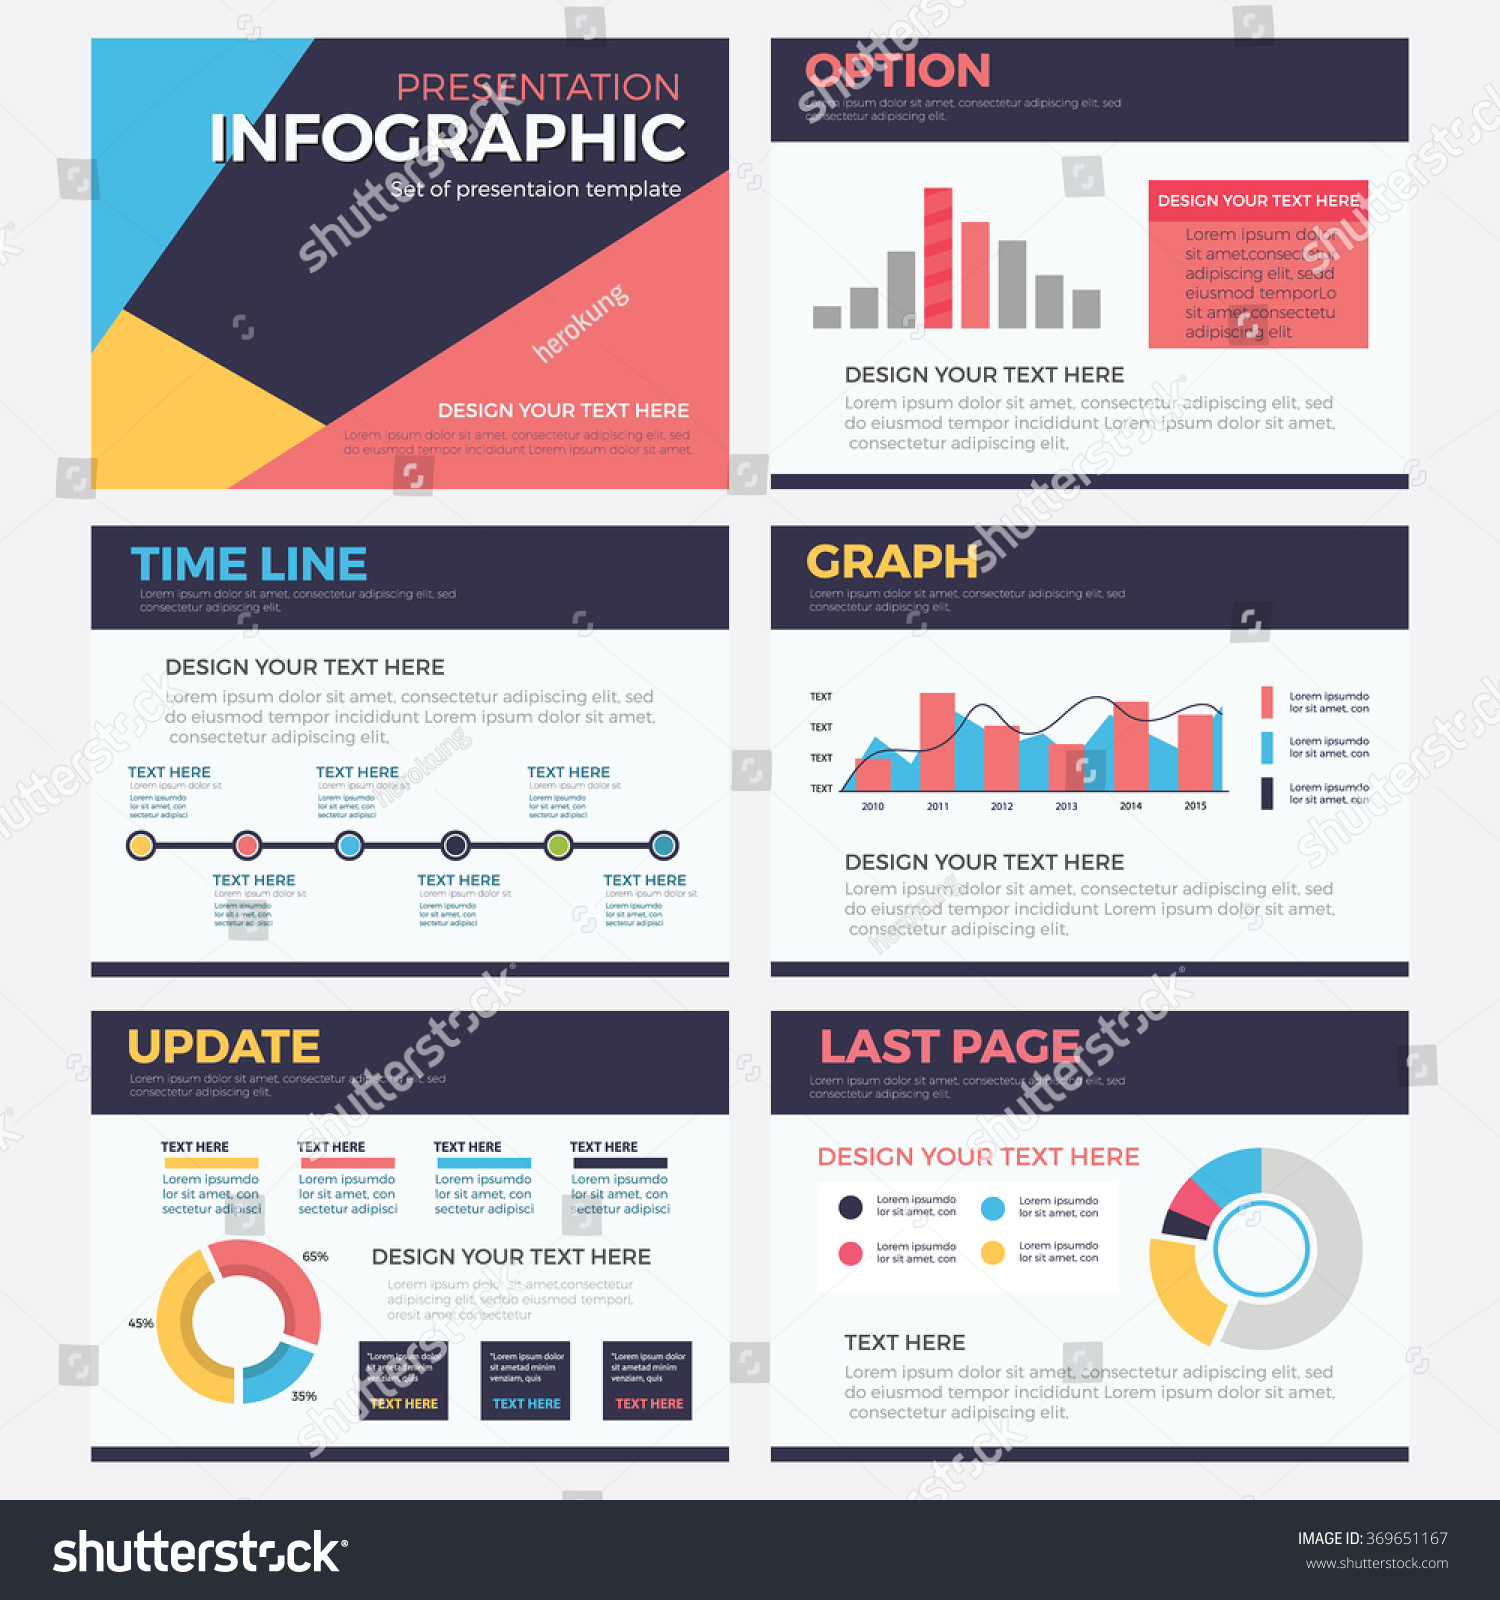 Infographic presentation template powerpoint business marketing infographic presentation template powerpoint business marketing vector design illustration alramifo Image collections